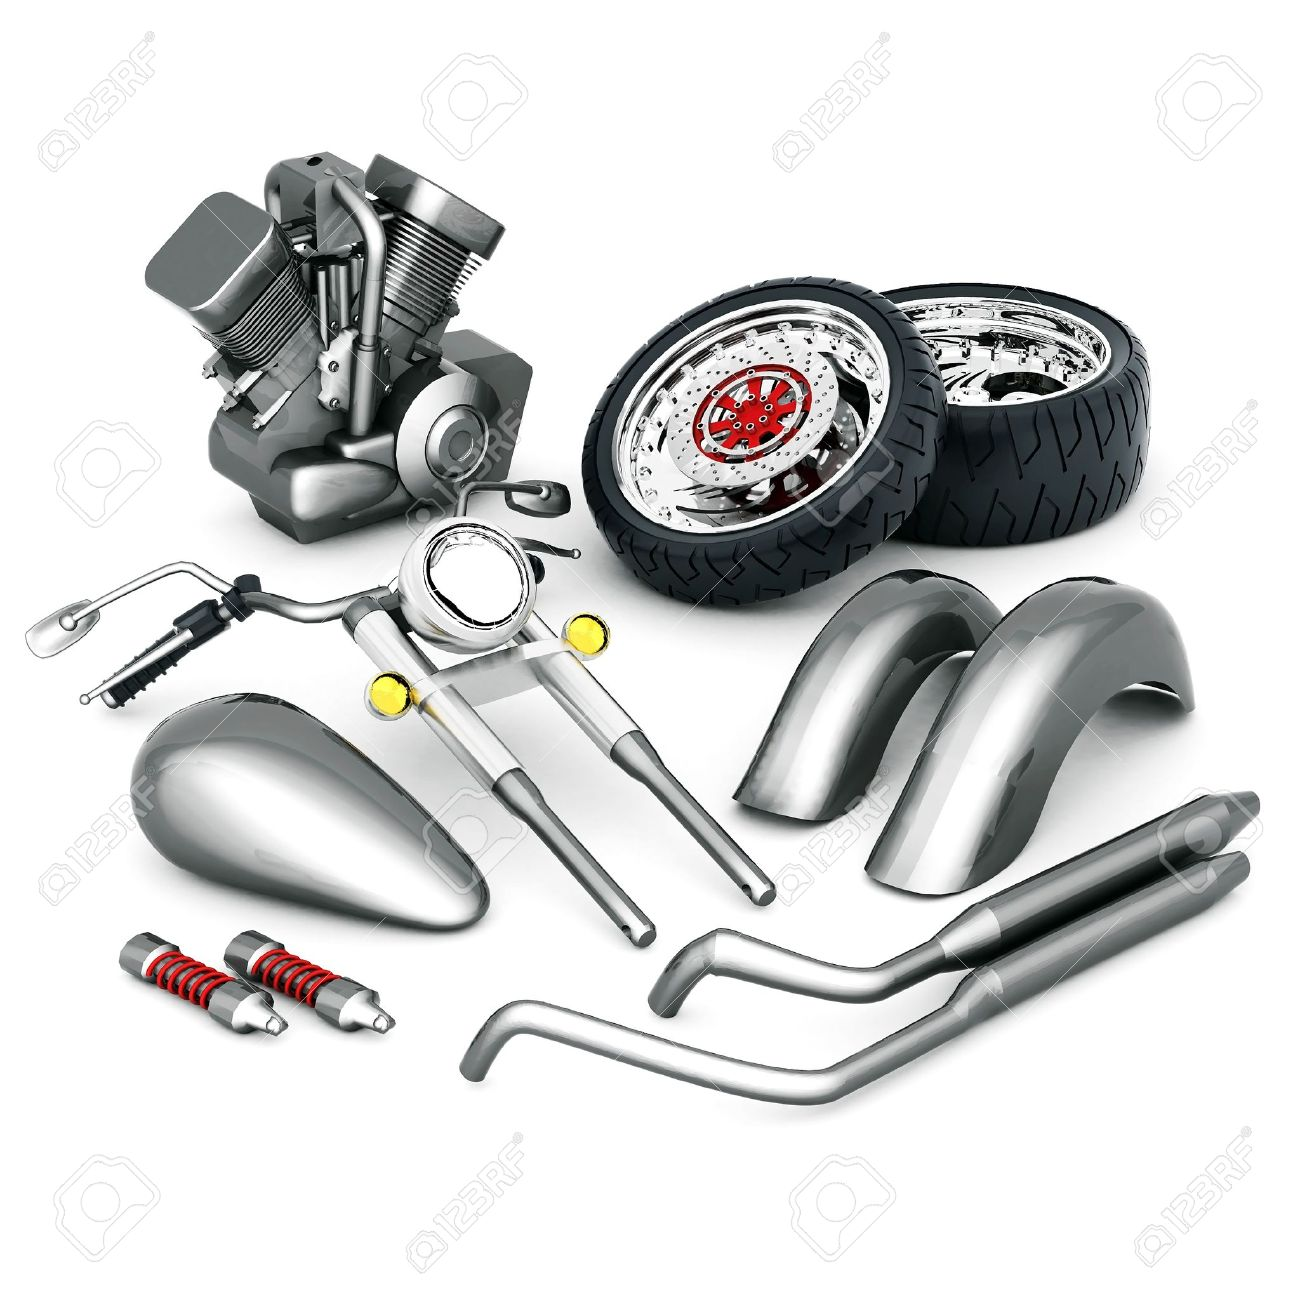 Online Motor Cycle Parts